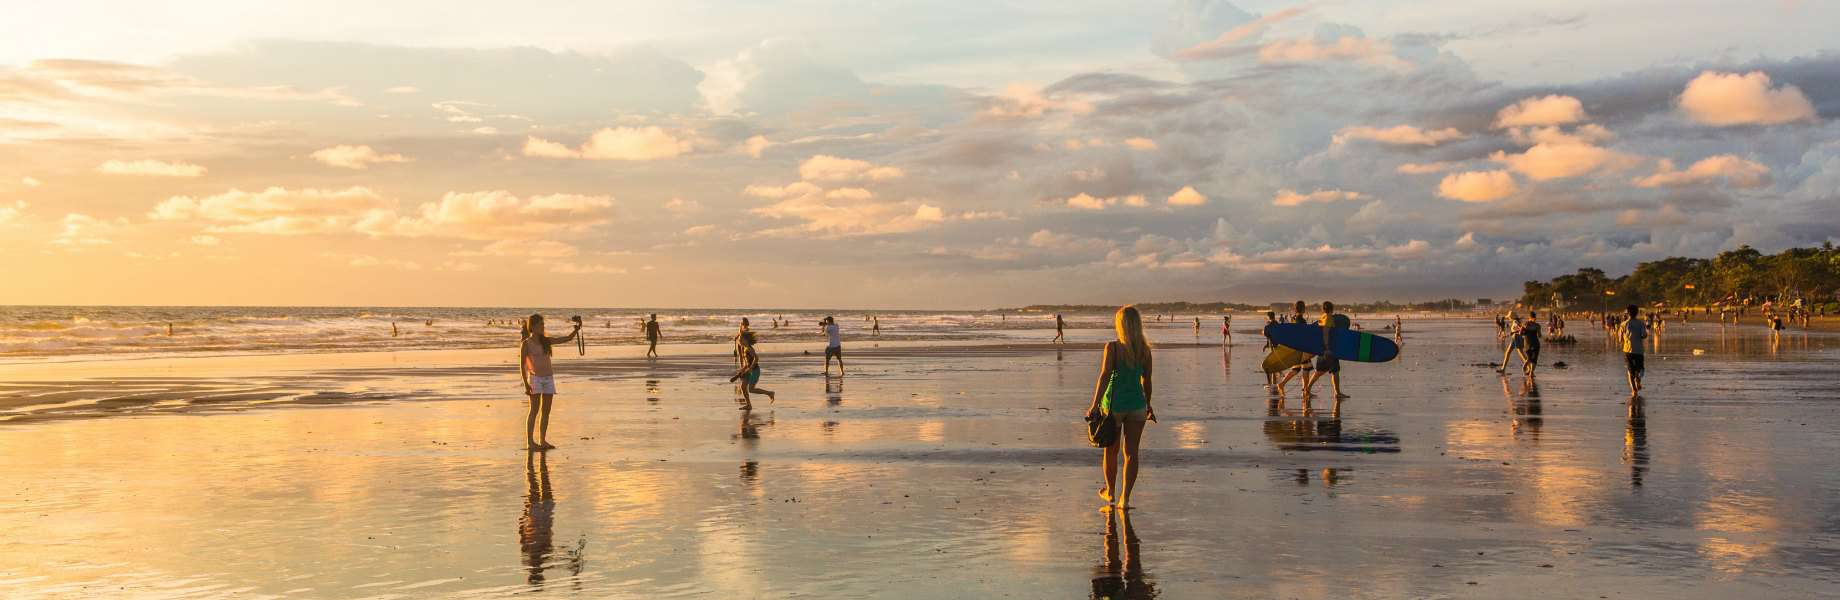 7 nights in Bali flying Air NZ from $1135